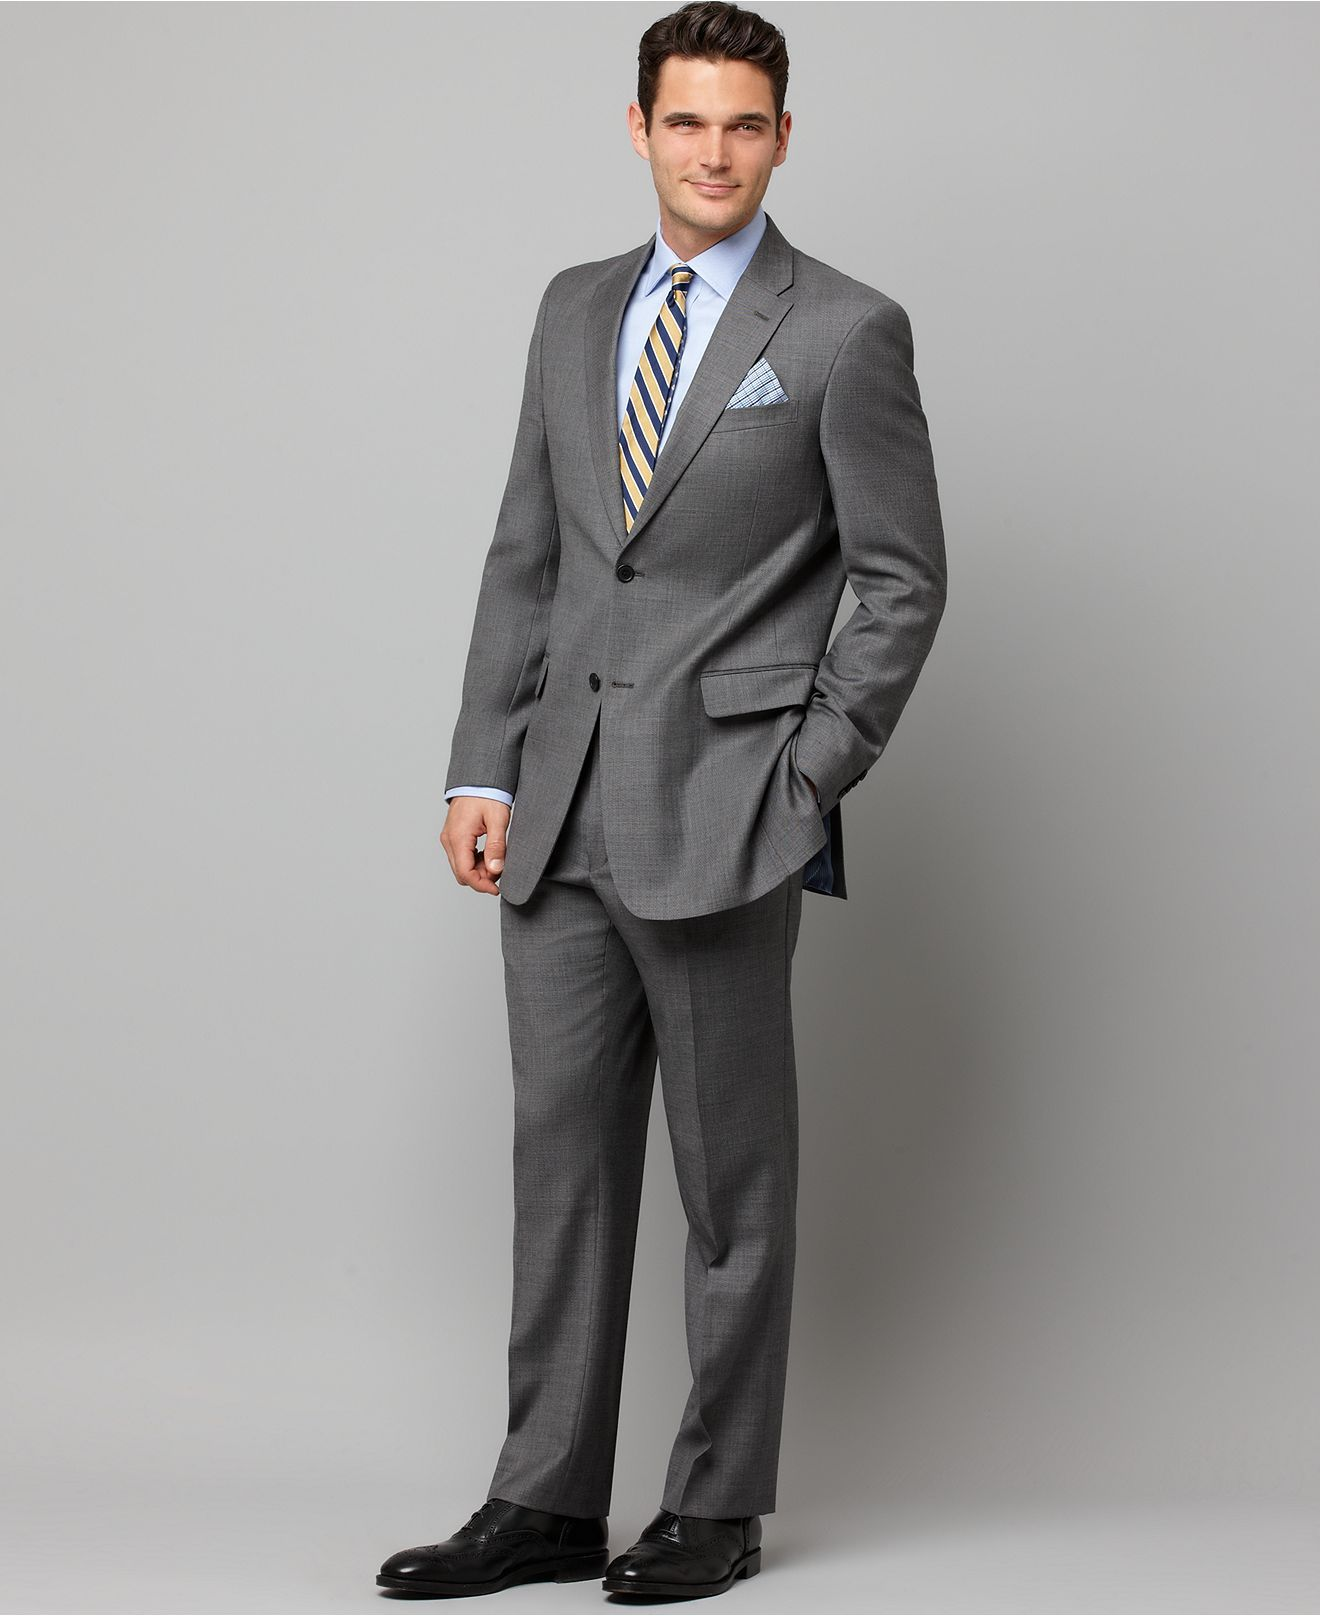 Tommy Hilfiger Suit Gray Sharkskin Slim Fit Mens Suits